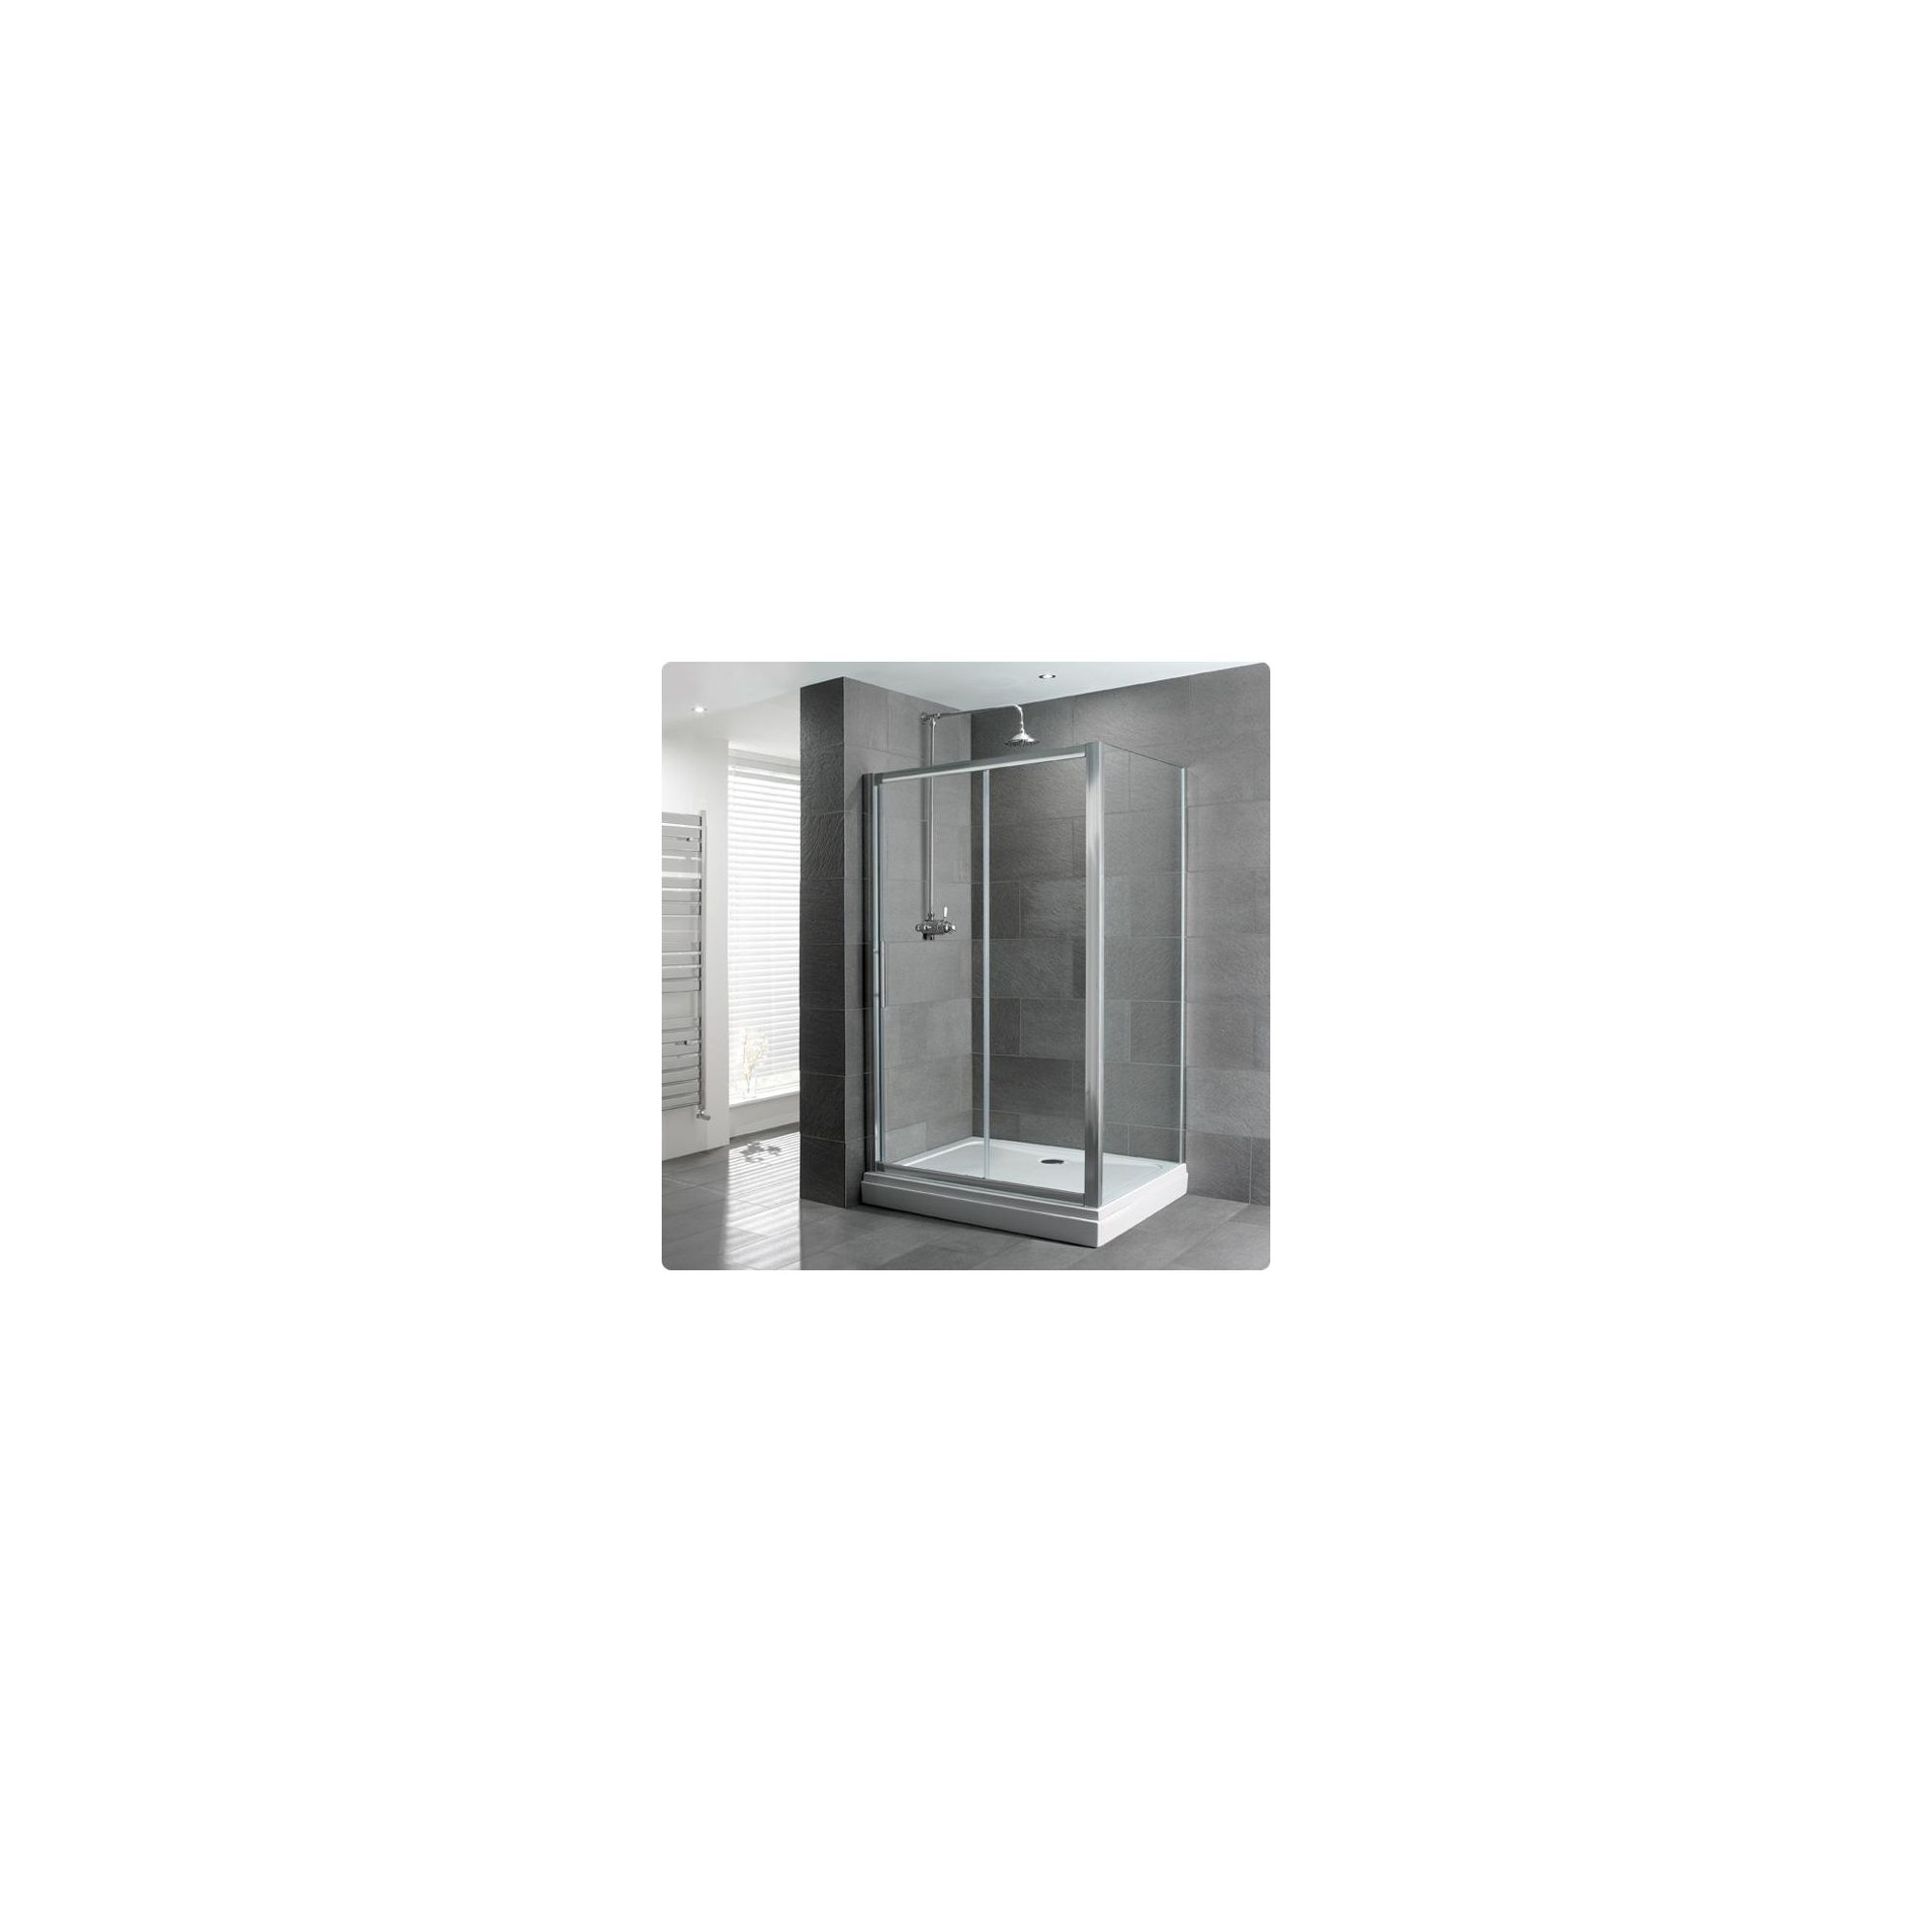 Duchy Select Silver Single Sliding Door Shower Enclosure, 1200mm x 760mm, Standard Tray, 6mm Glass at Tescos Direct